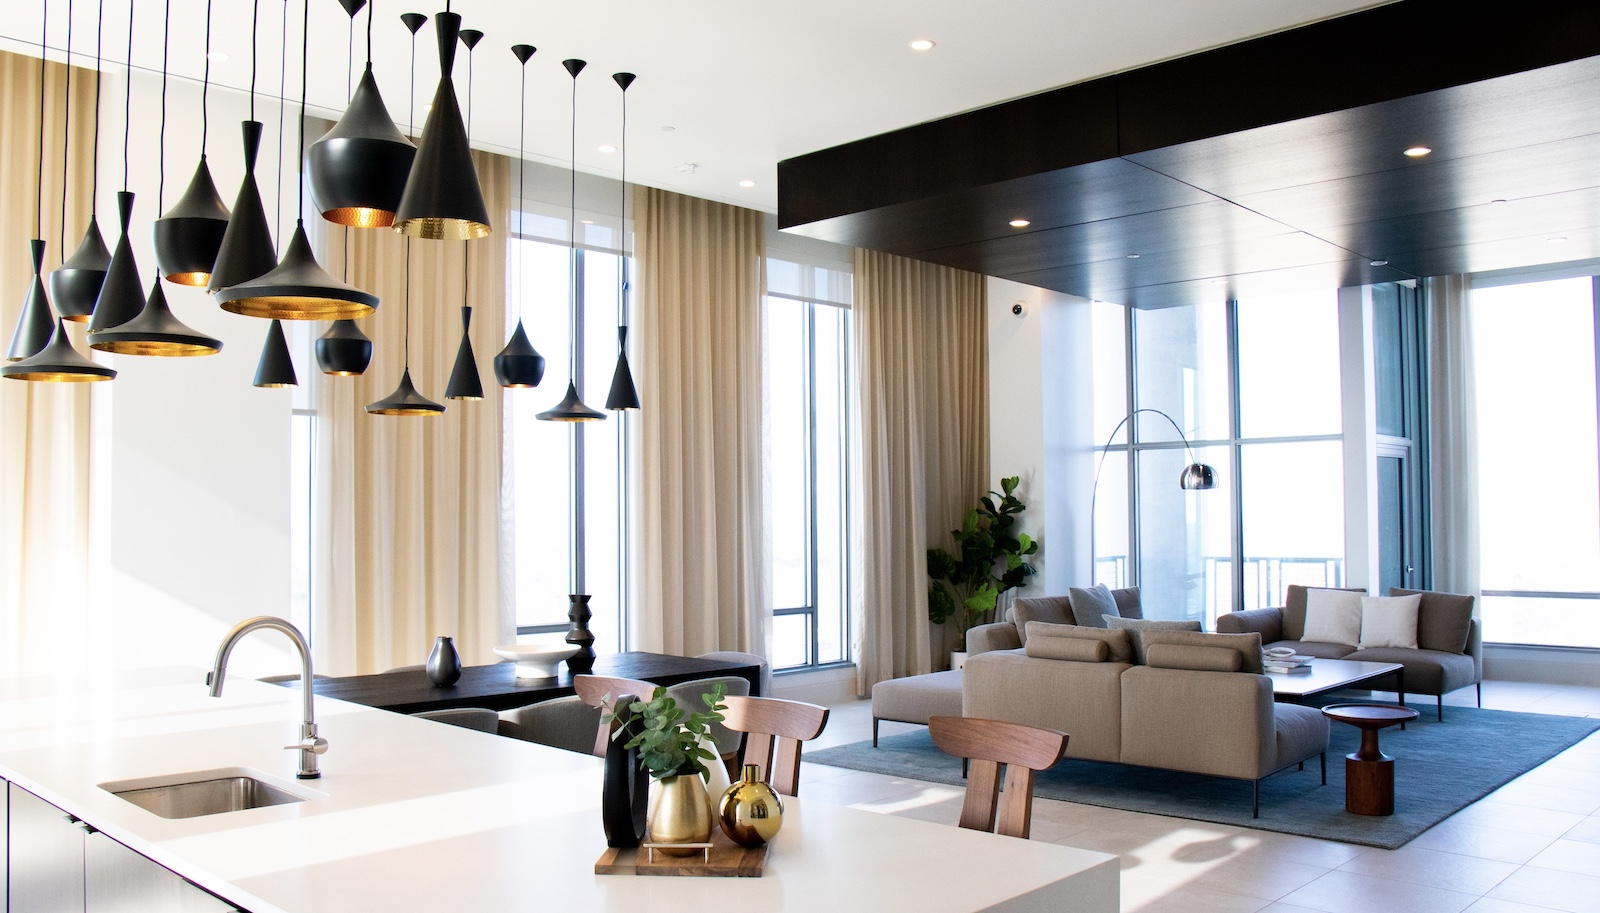 Sculptural black pendant lighting hangs over kitchen island